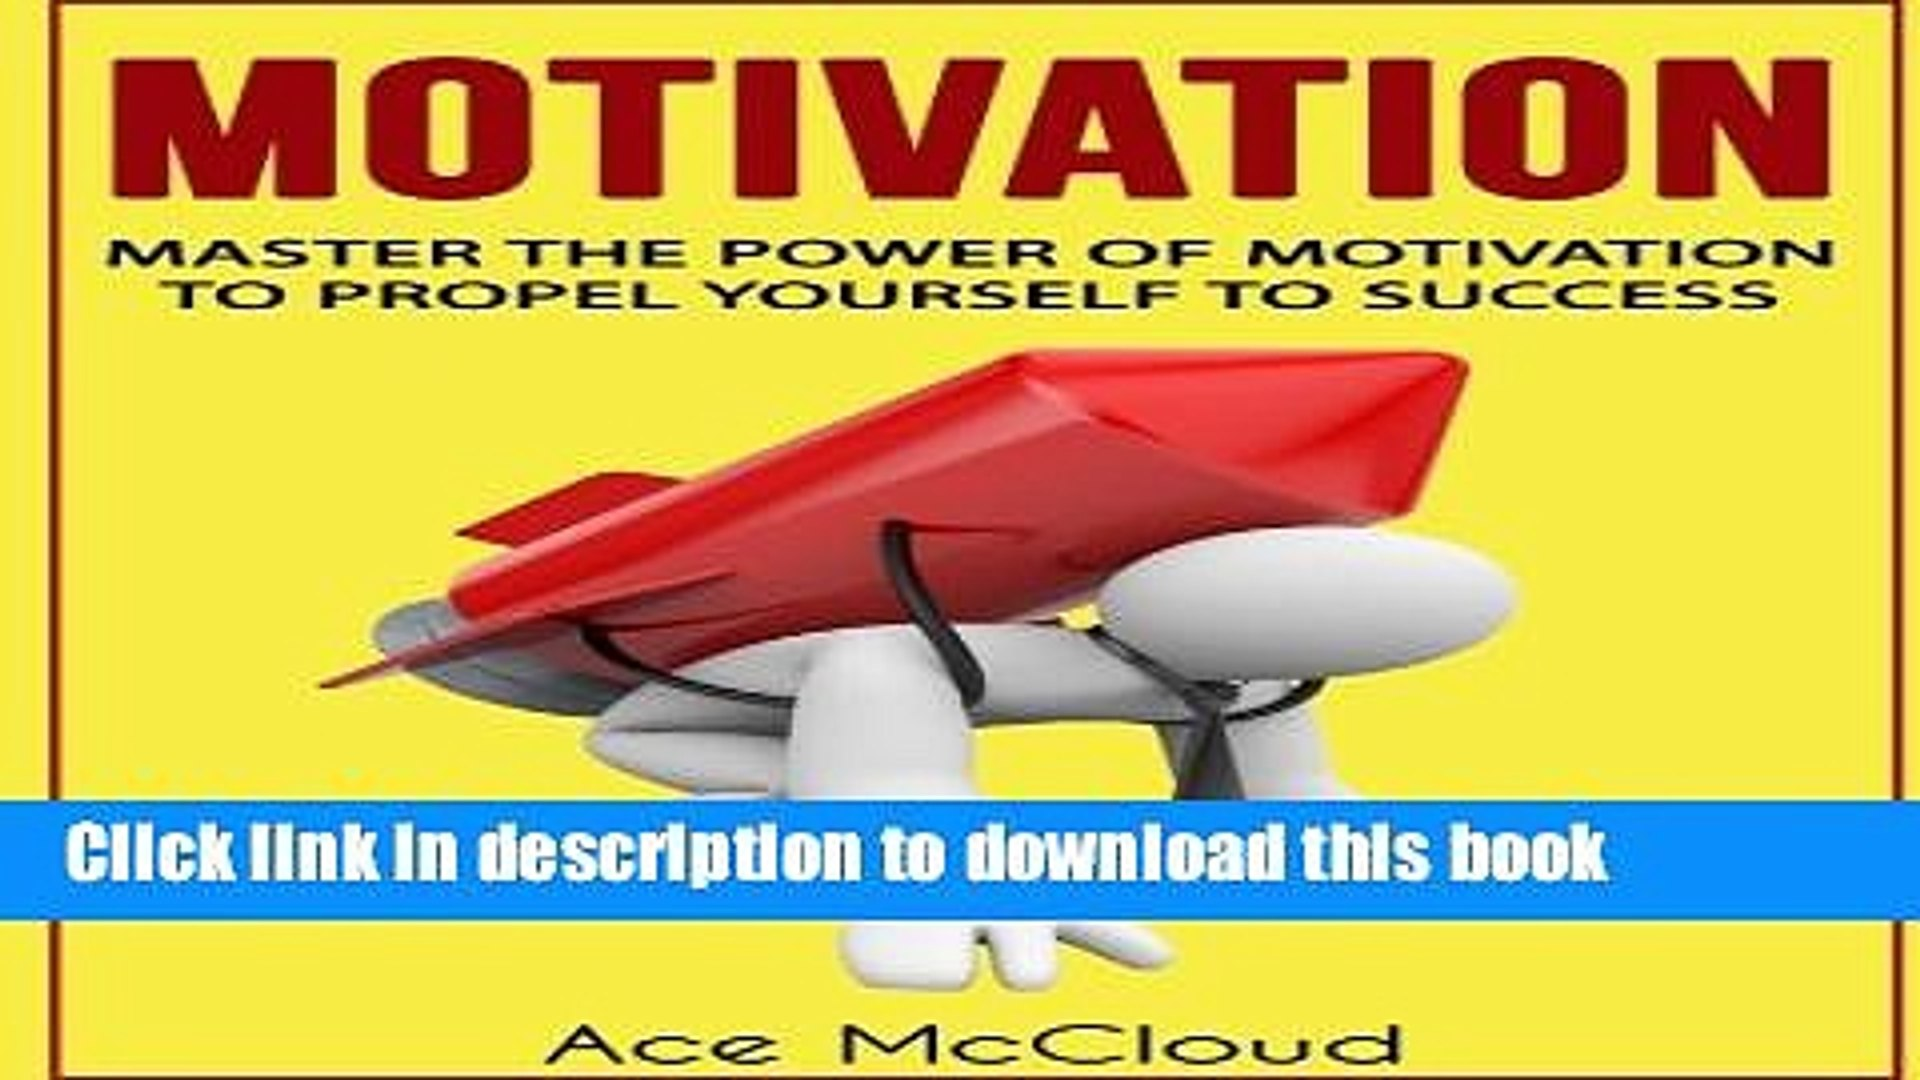 Read Motivation: Master The Power Of Motivation To Propel Yourself To Success (Motivational Books,